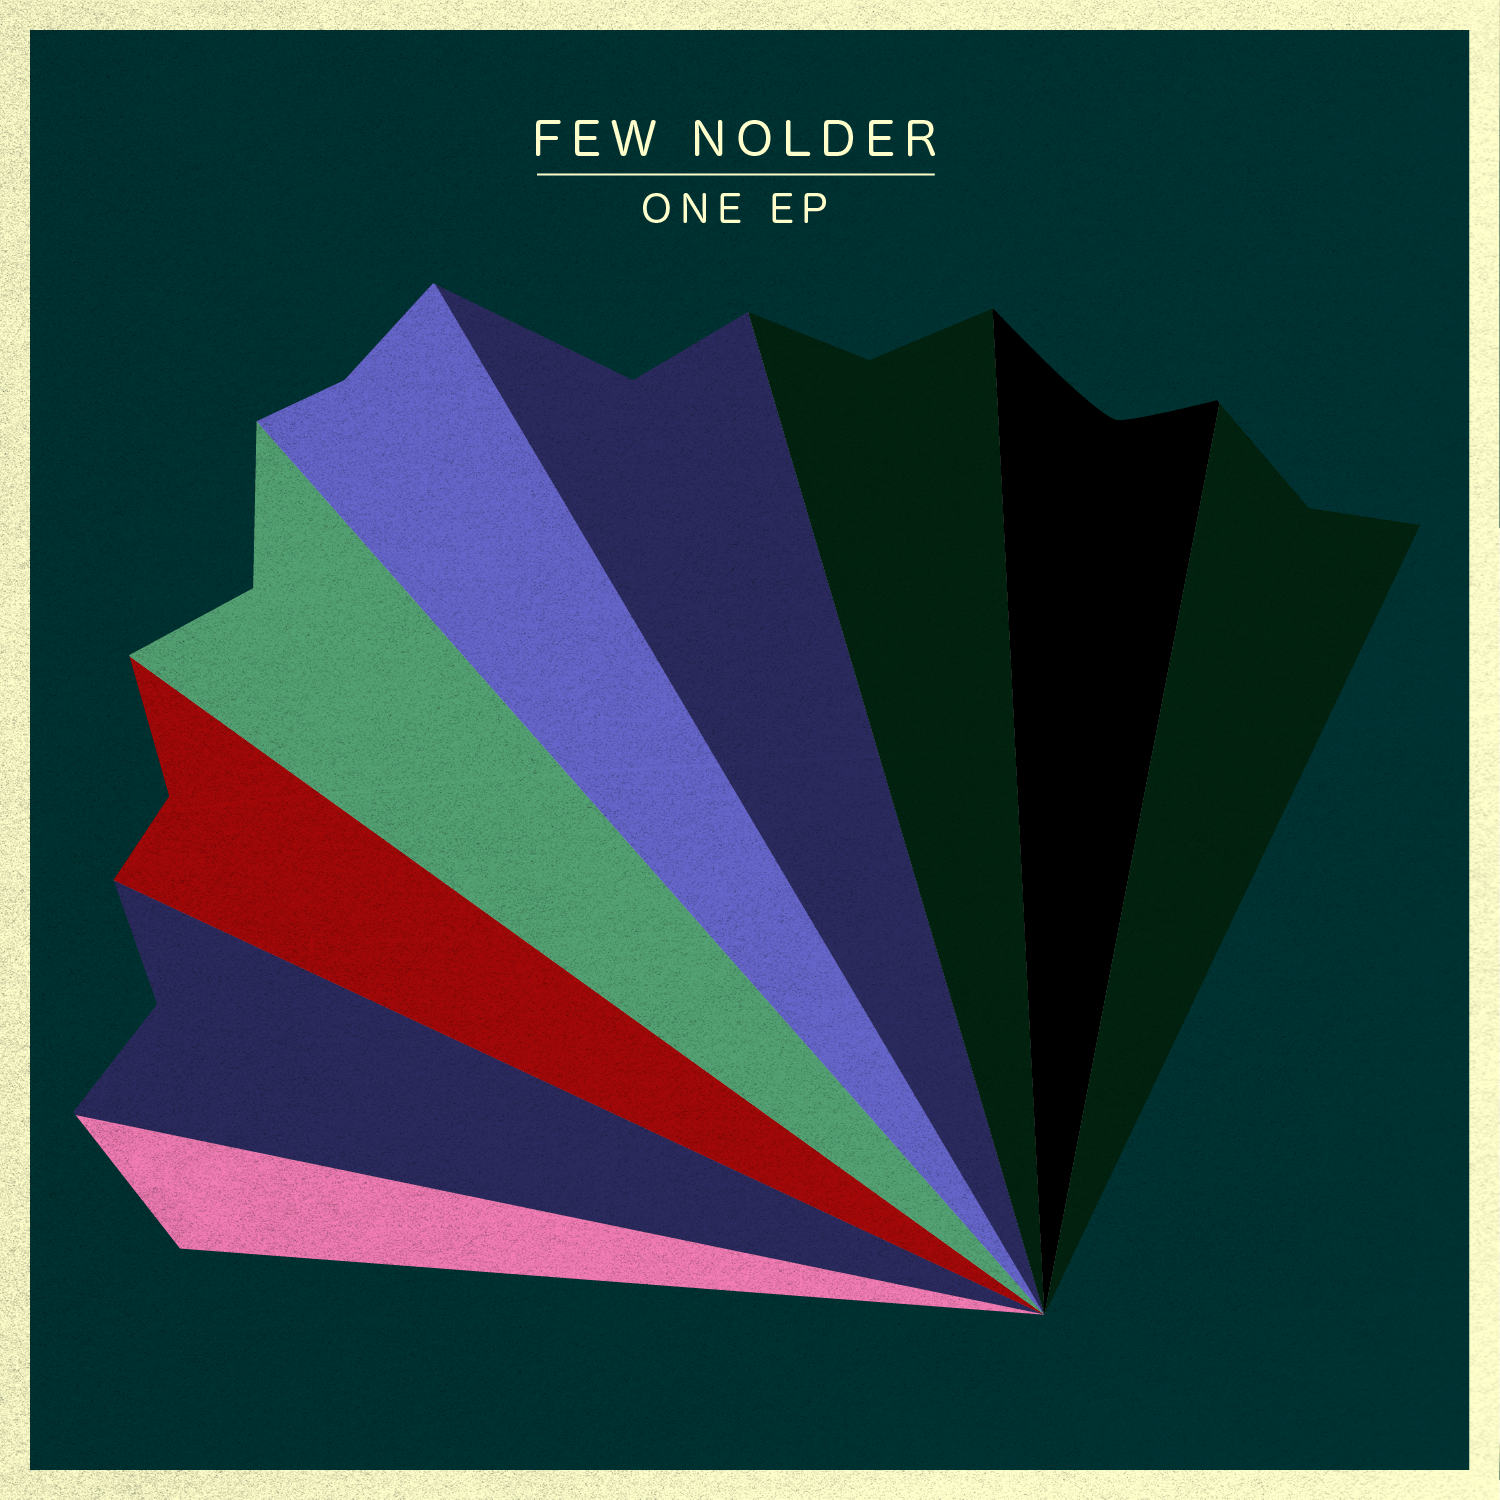 fewnolder_-_one_ep_-_1500px.png